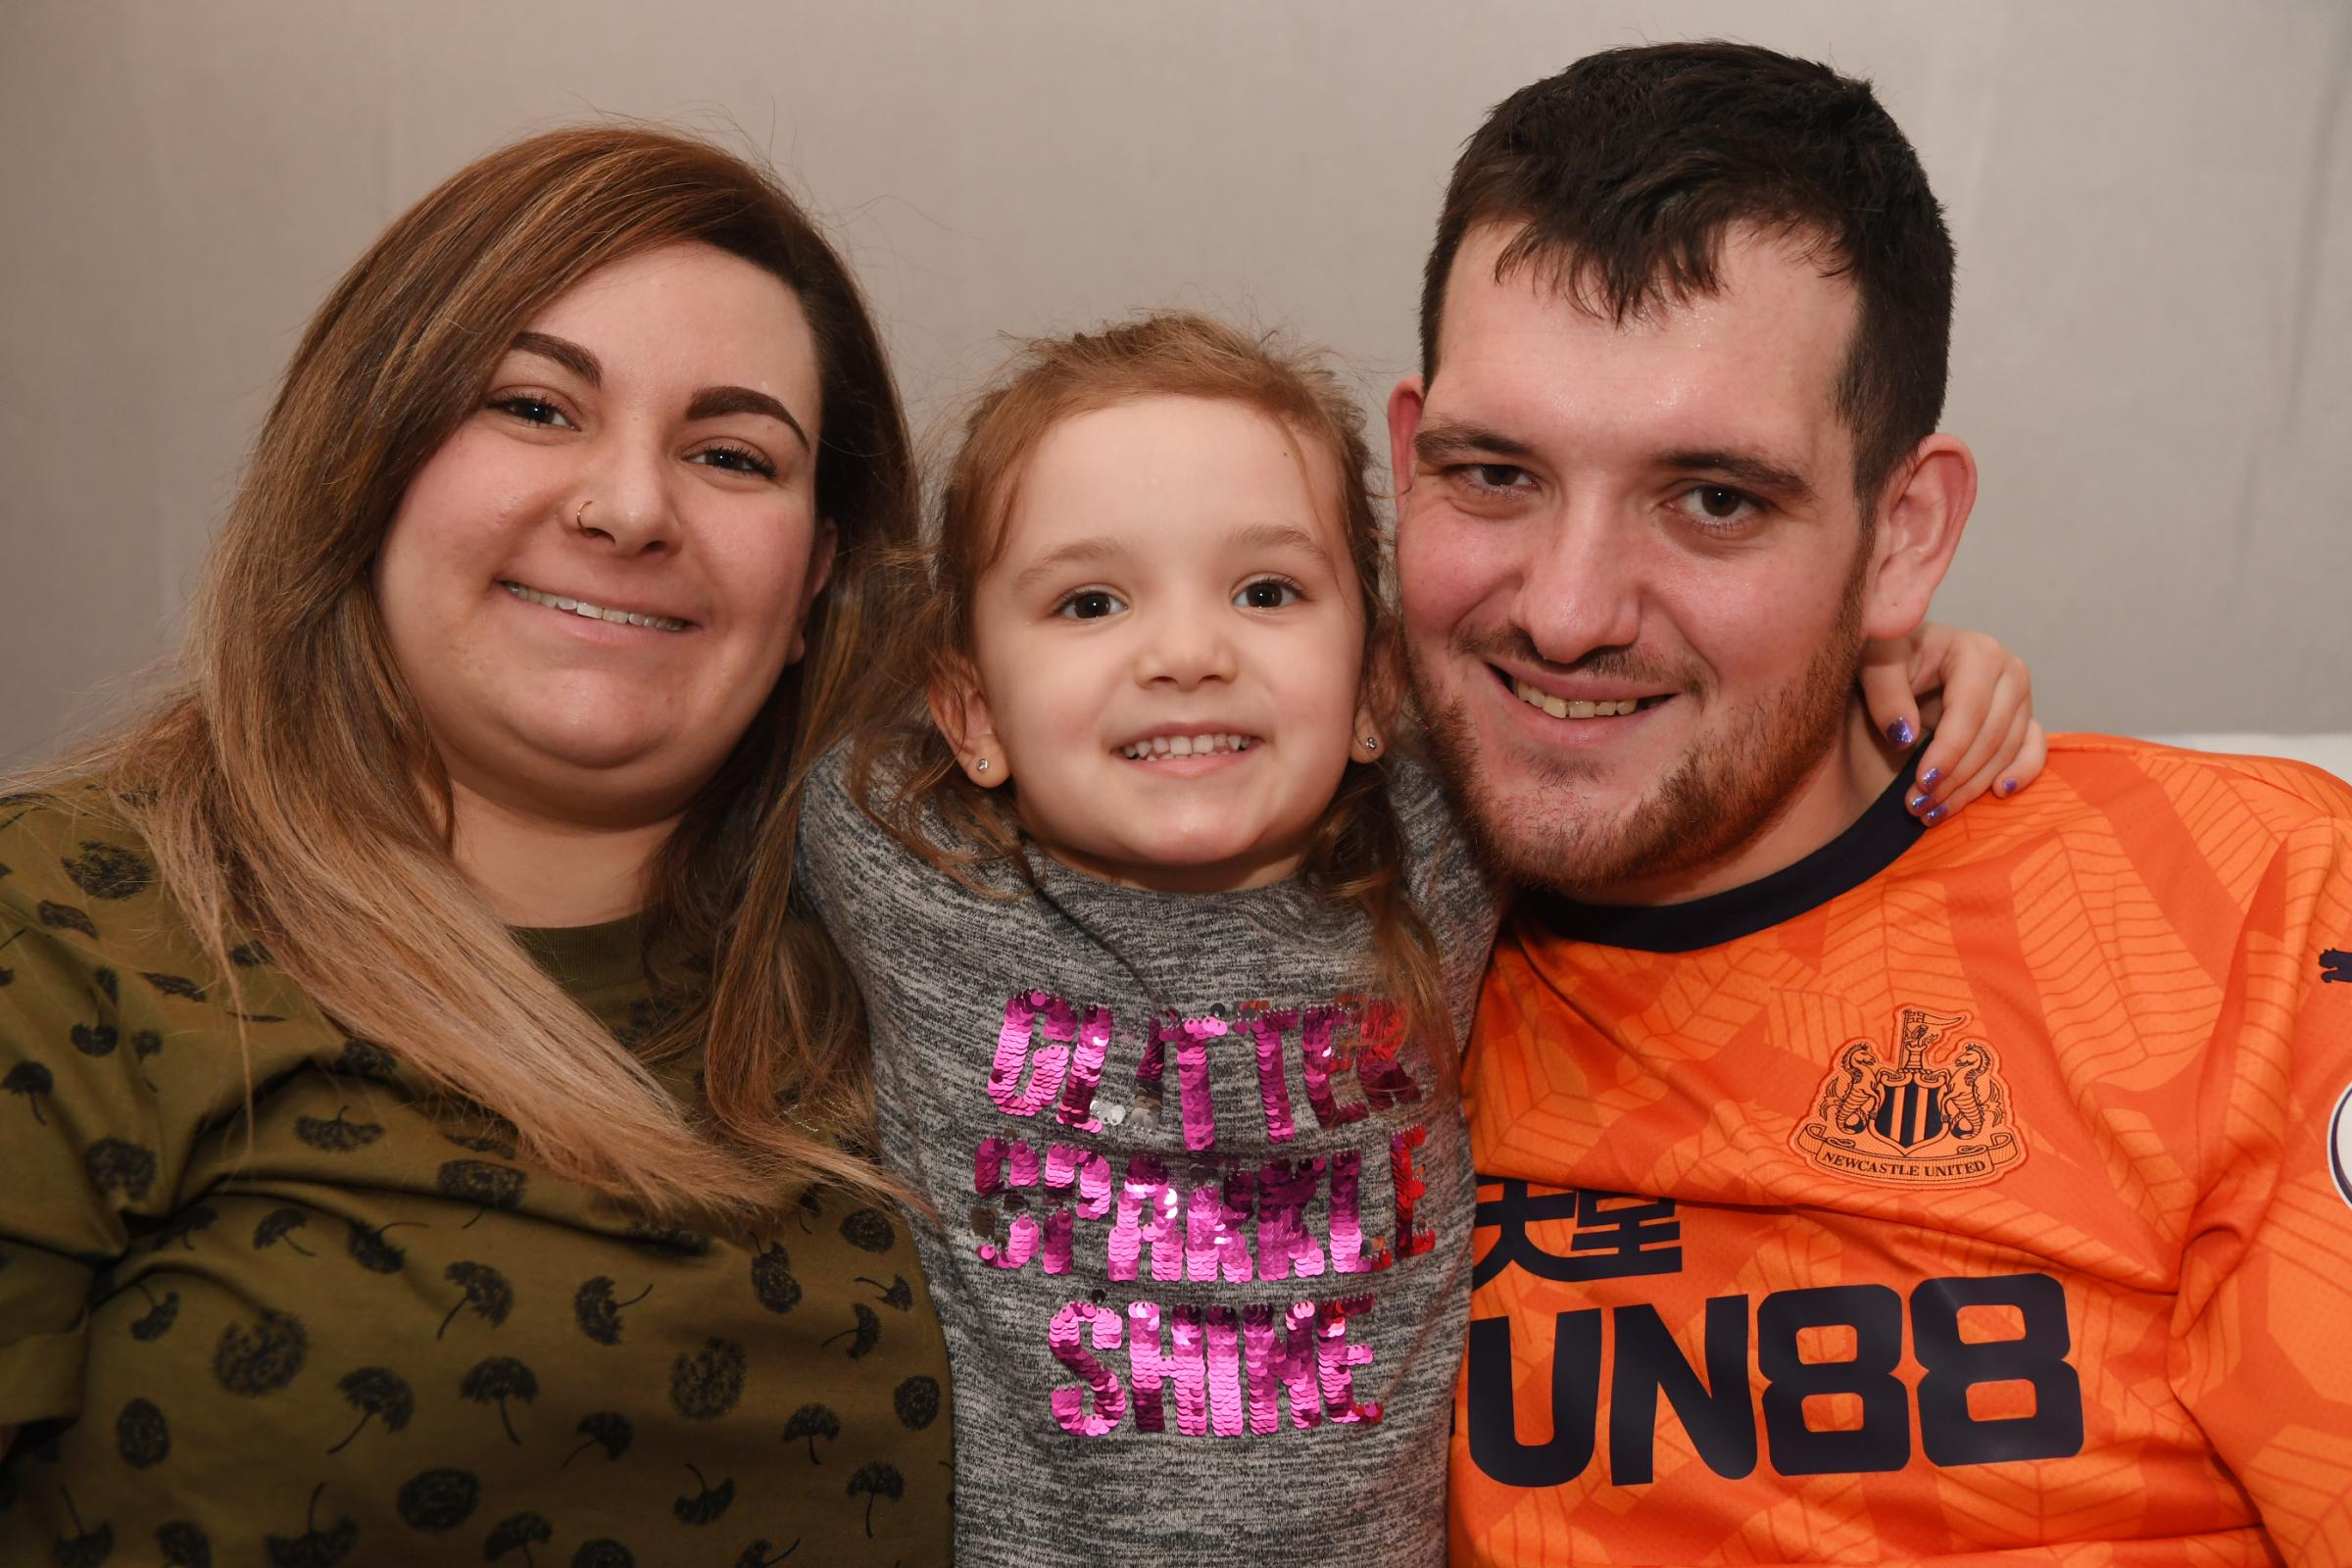 MS sufferer to take on skydive for charity